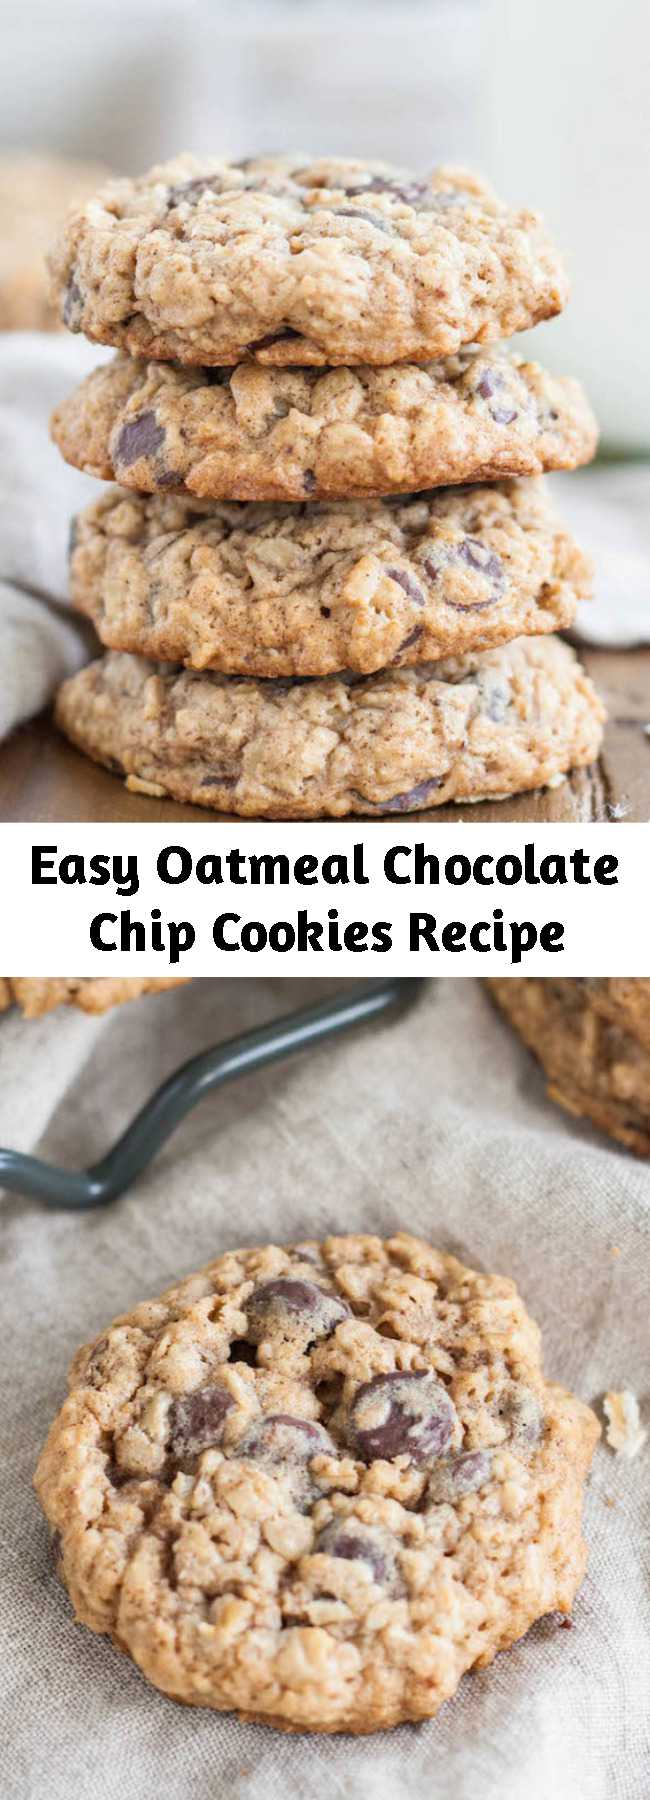 Easy Oatmeal Chocolate Chip Cookies Recipe - The only oatmeal cookie recipe you will ever need! Soft and chewy oatmeal chocolate chip cookies loaded with oats and chocolate chips!